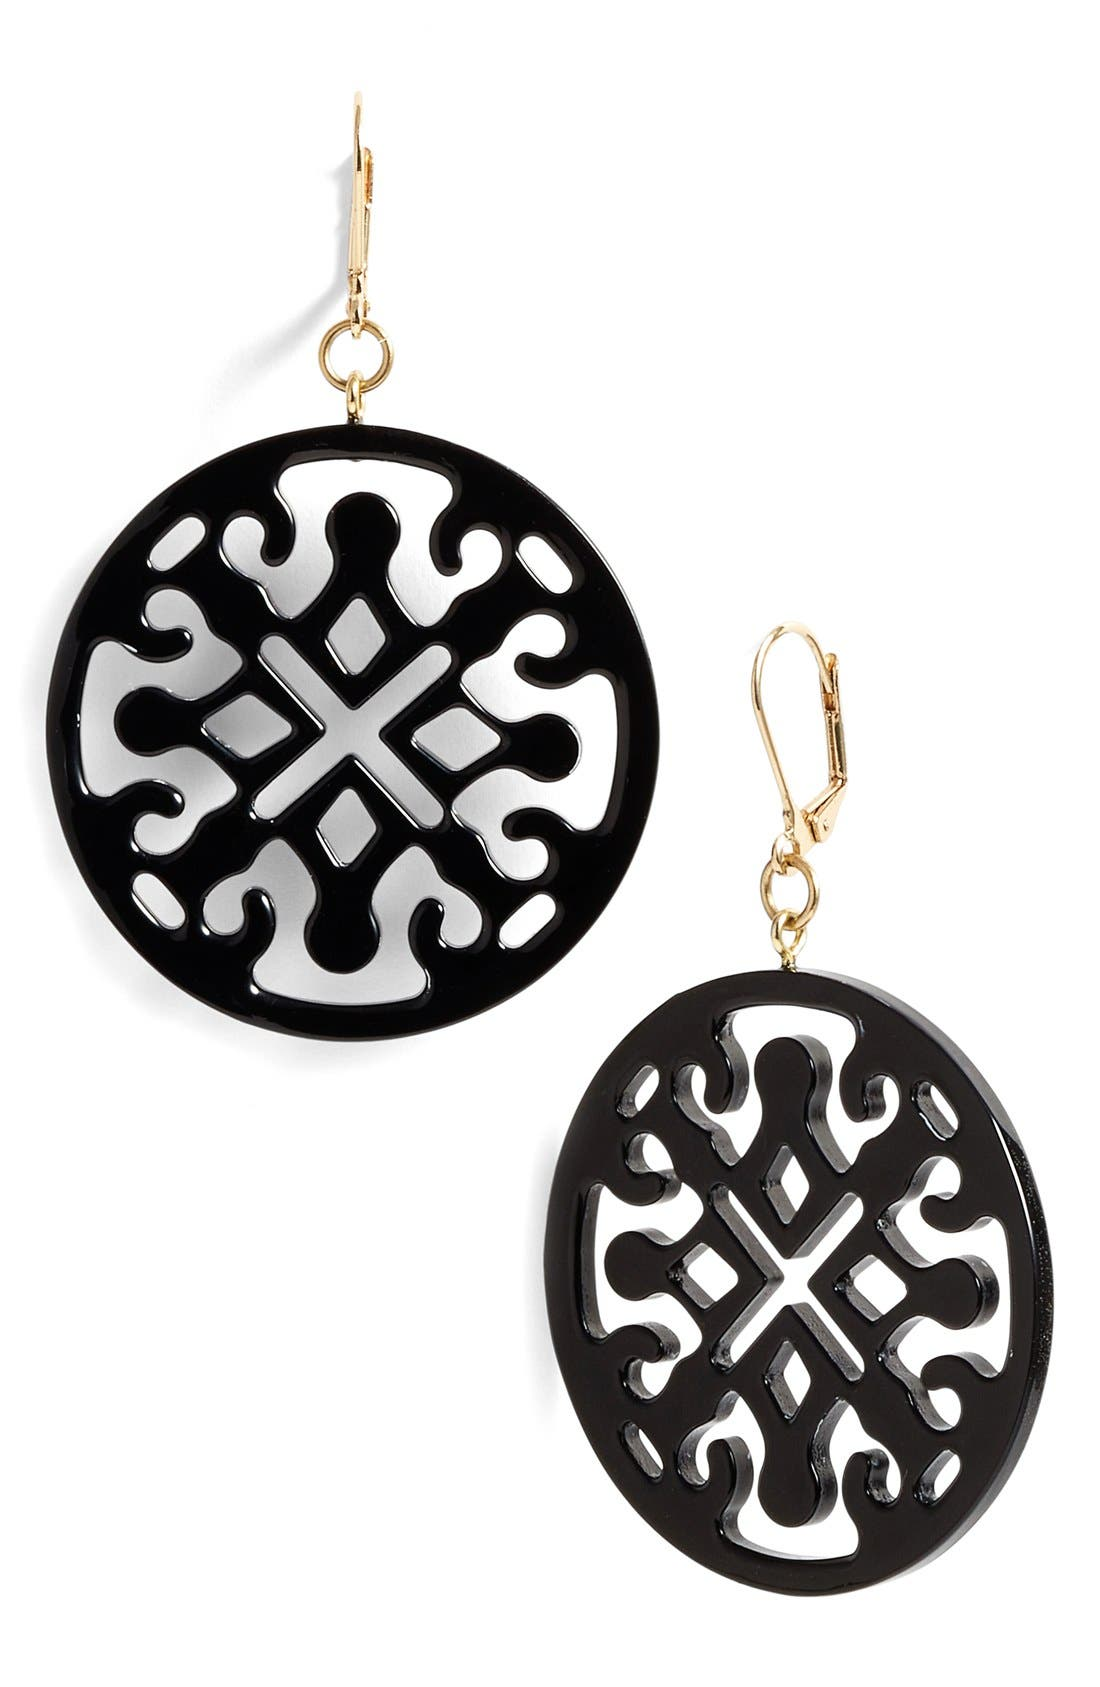 Medallion Filigree Drop Earrings,                             Main thumbnail 1, color,                             001